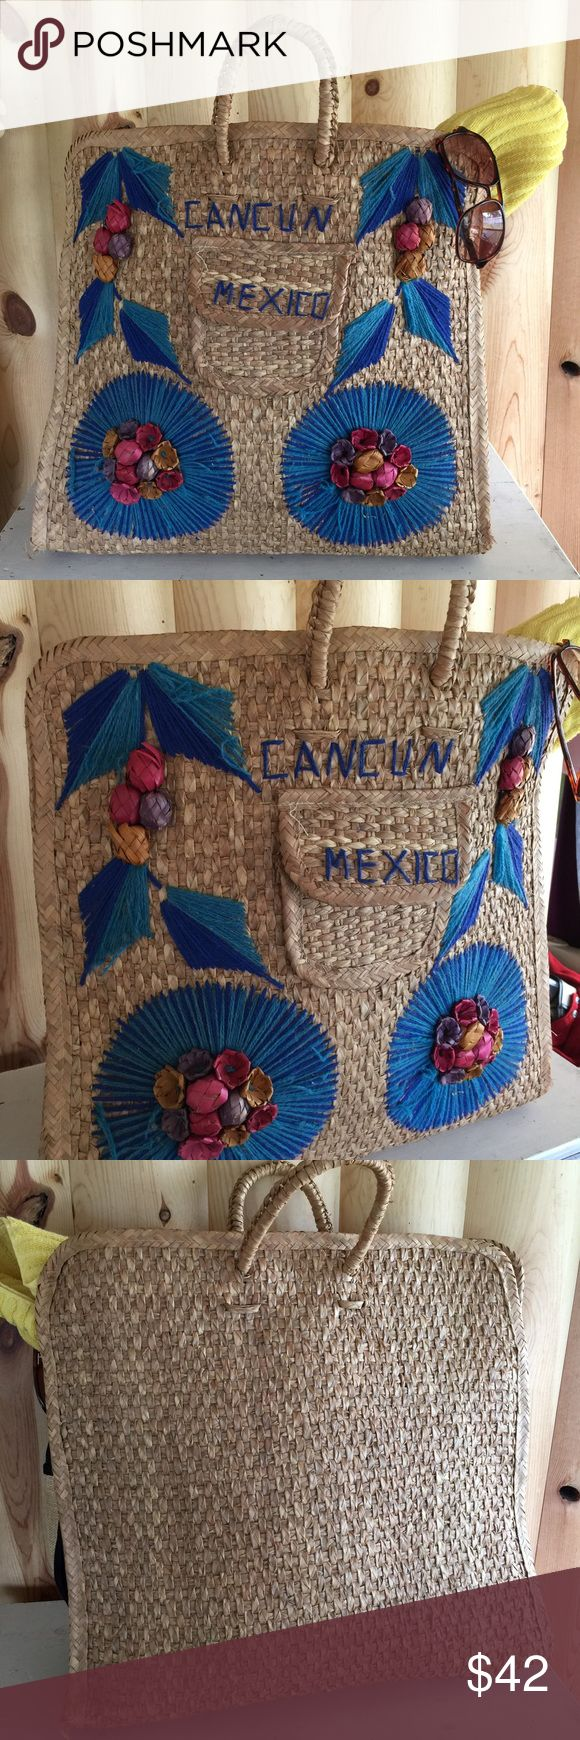 "HP! Vtg MEXICO woven straw beach bag/tote bag Host pick 7.8 / Best in Swim Party ⛱! Festival-ready 1970s tourist Cancun Mexico souvenir large tote bag. Use for the beach, pool, or anywhere you want to make a statement! Normal wear & gentle fraying from usage- adds to the boho/festival look! See bottom corner photo, both sides look similar. 23"" by 20"" , (including handles) will arrive in a large box Vintage Swim"